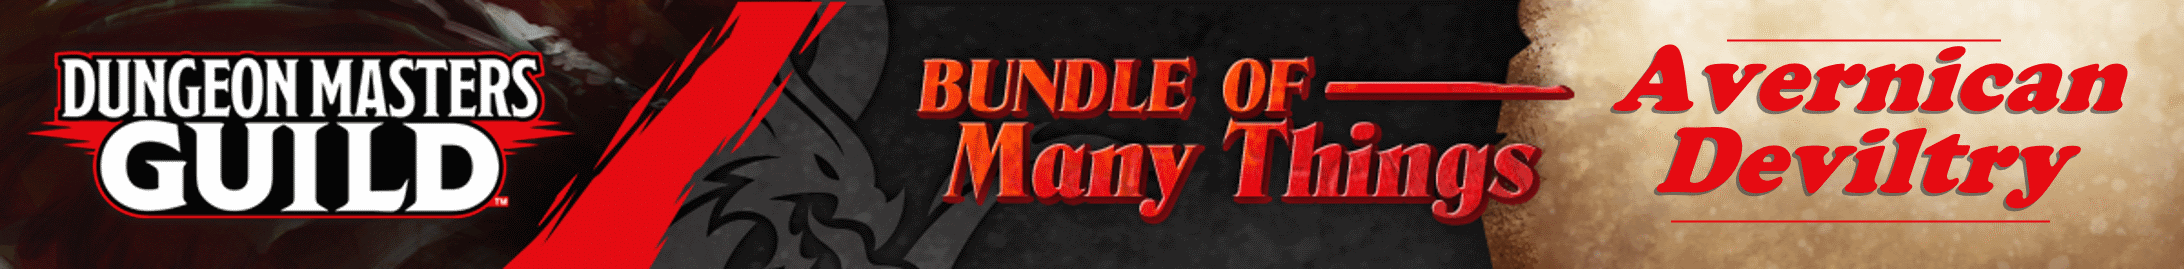 Bundle of Many Things: Avernican Deviltry @ Dungeon Masters Guild